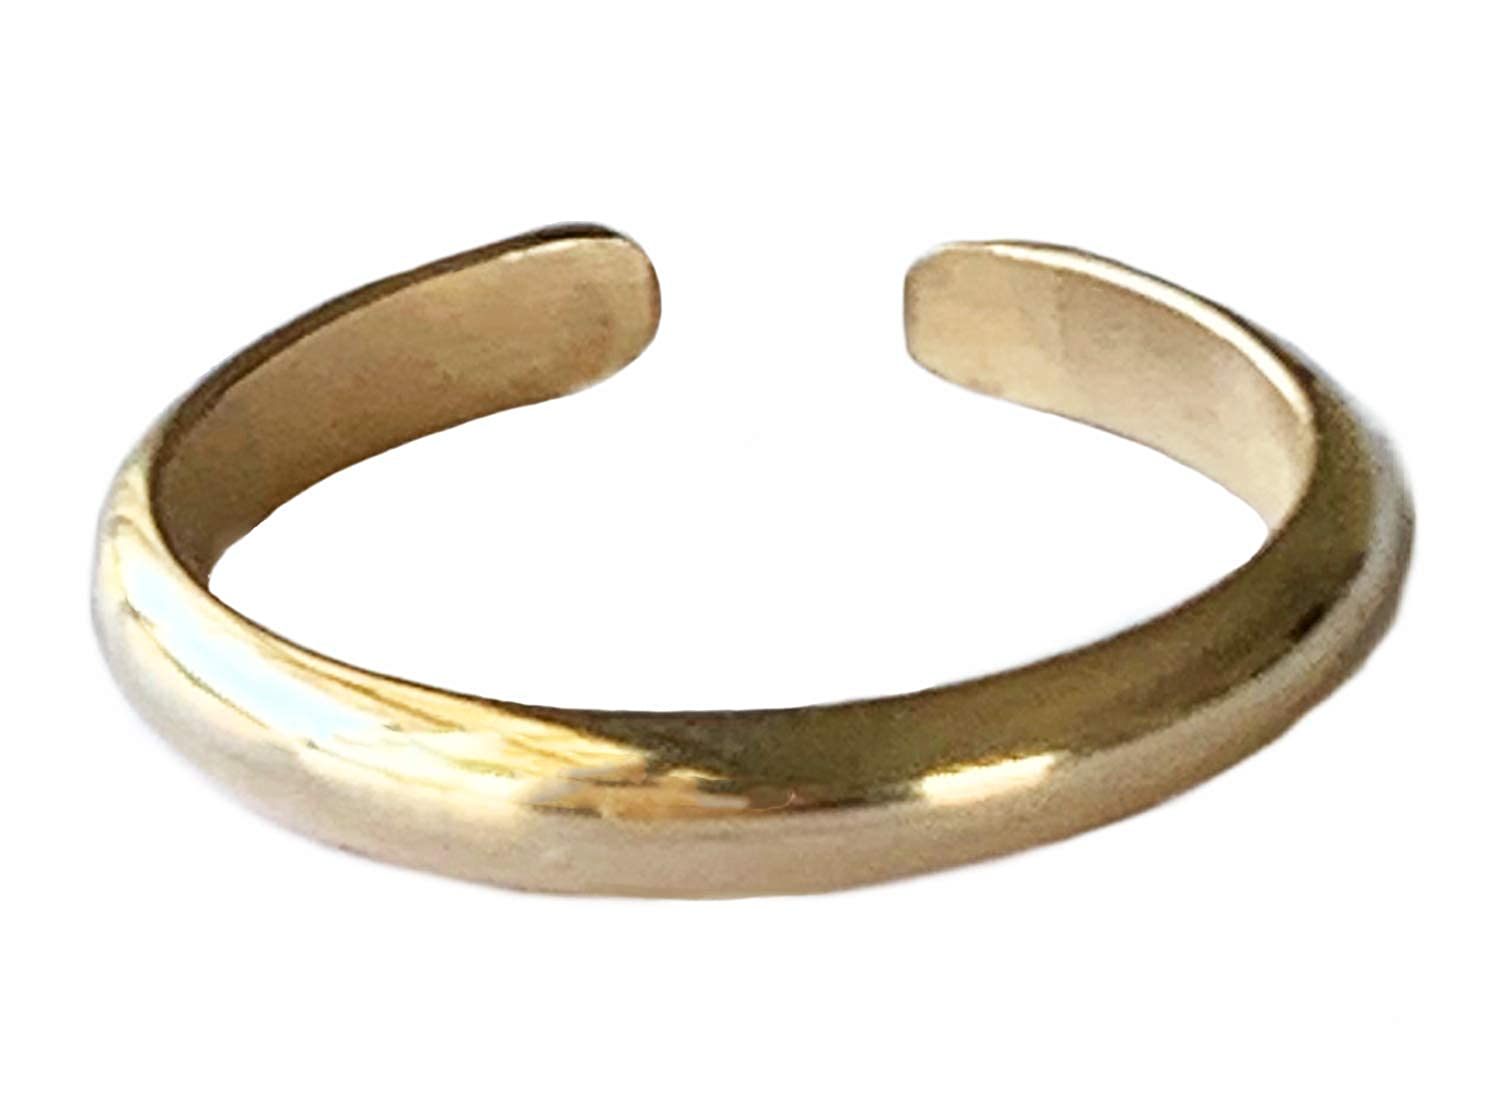 2MM Band 14k Gold Fill Attire for Your Toes Girls Adjustable Ring for Foot Or Midi for Women Made in The USA Or Men Toe Ring